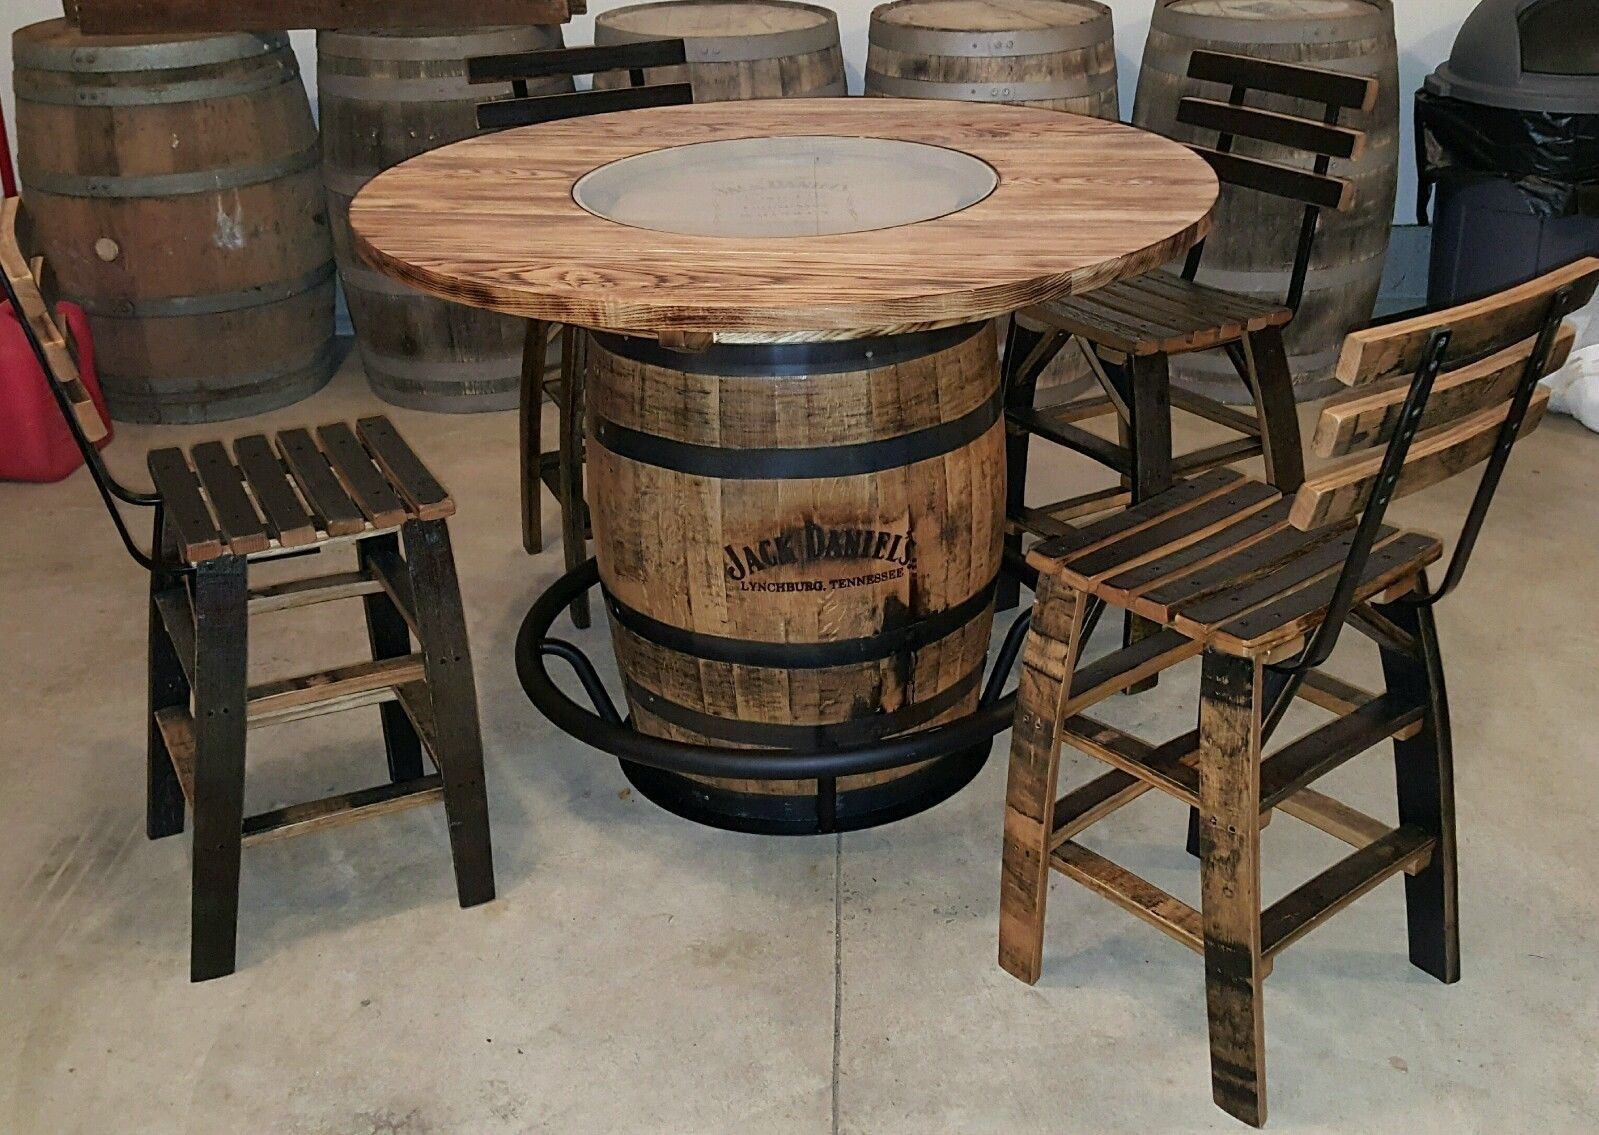 Jack Daniels Whiskey Barrel Table Authentic Charred Barrel